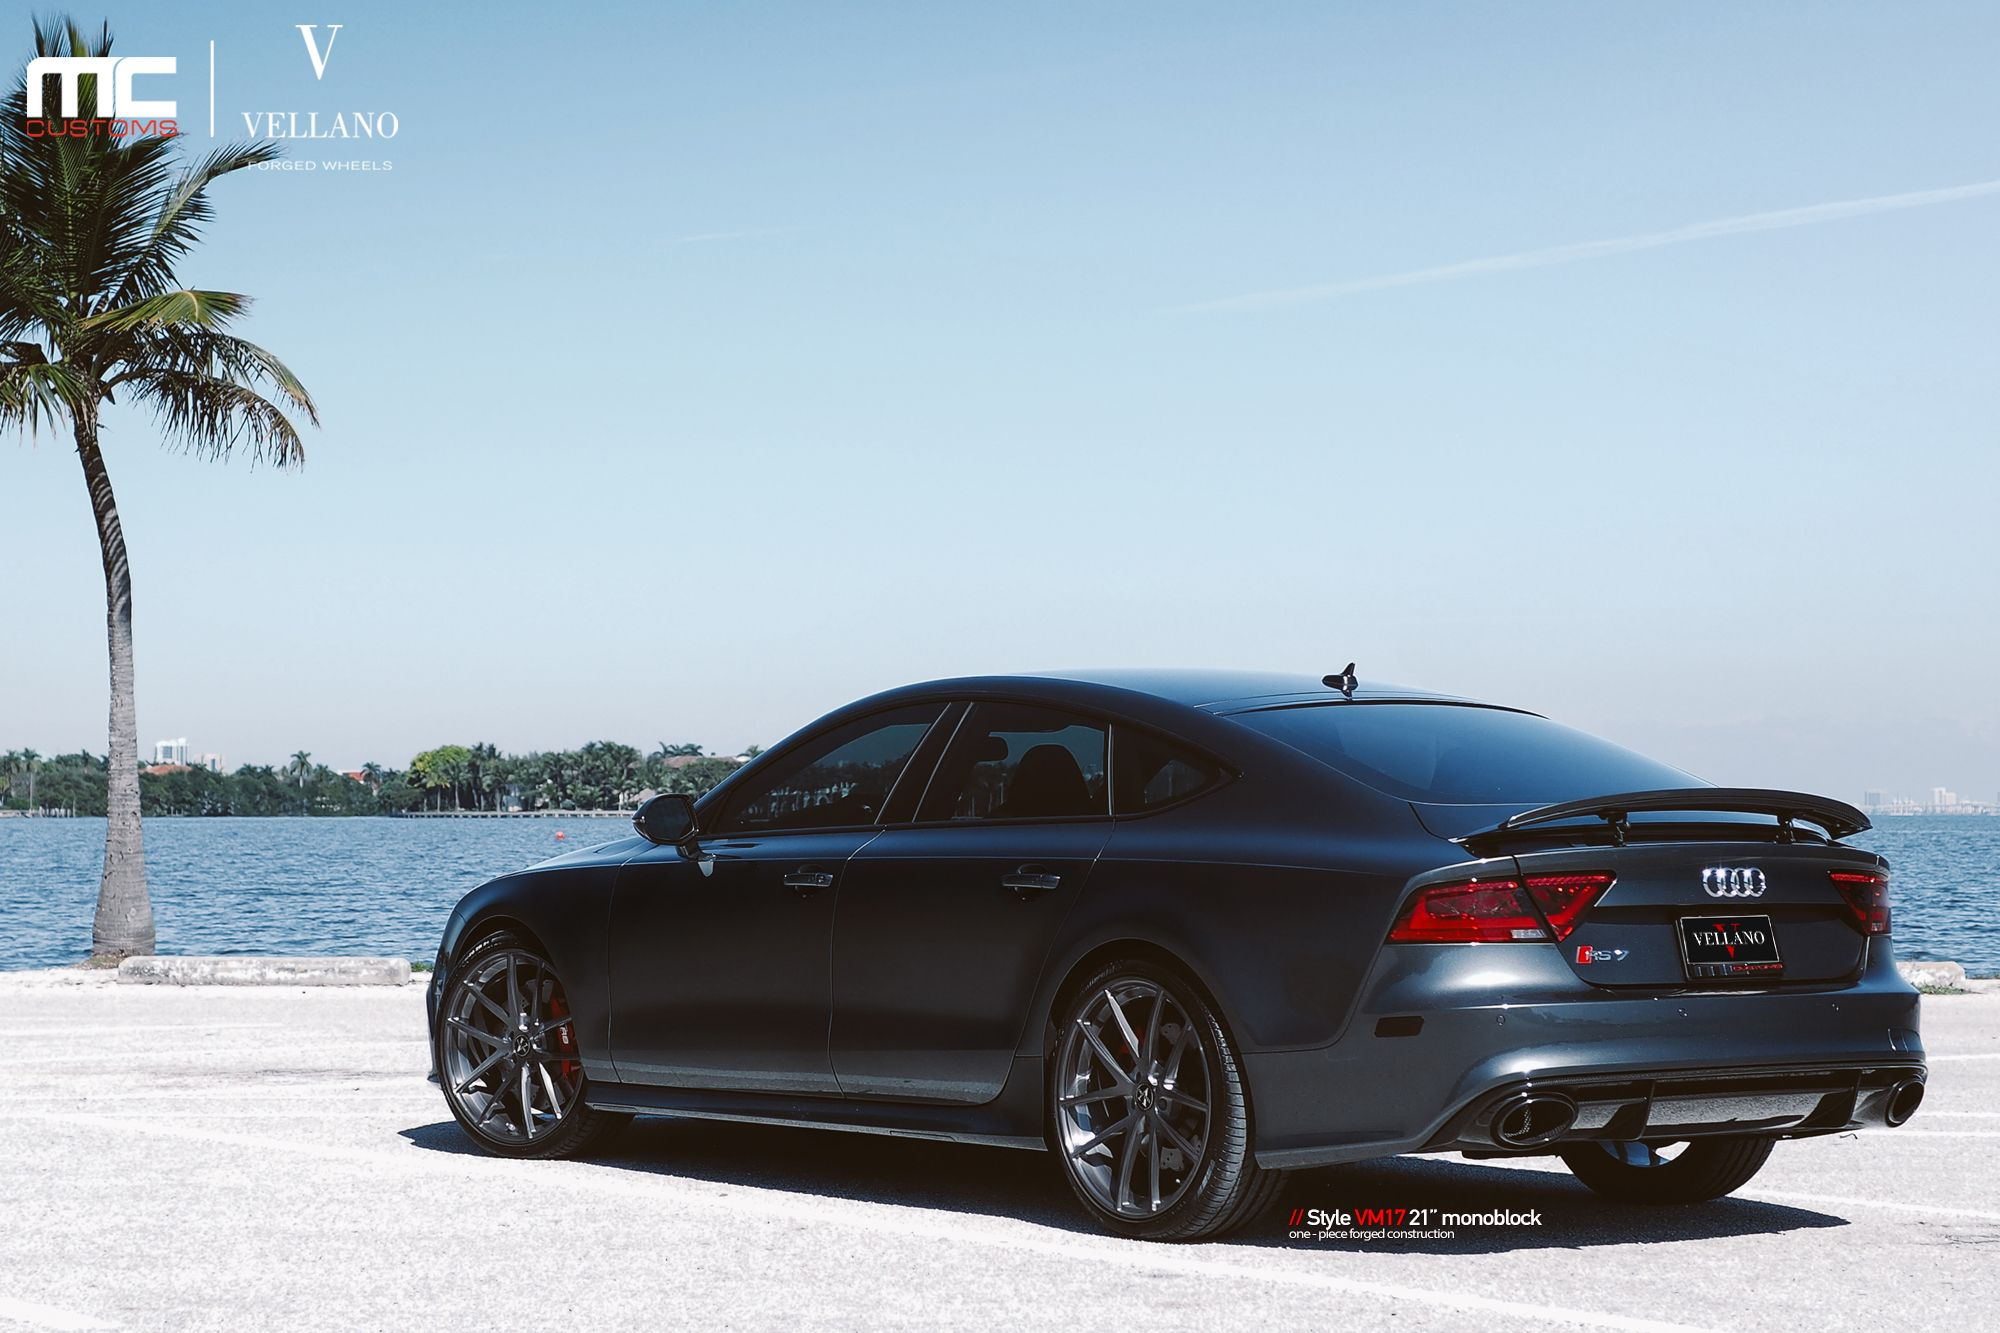 "check out this stunning Audi RS7 on Vellano VM17 21"" Monoblock"